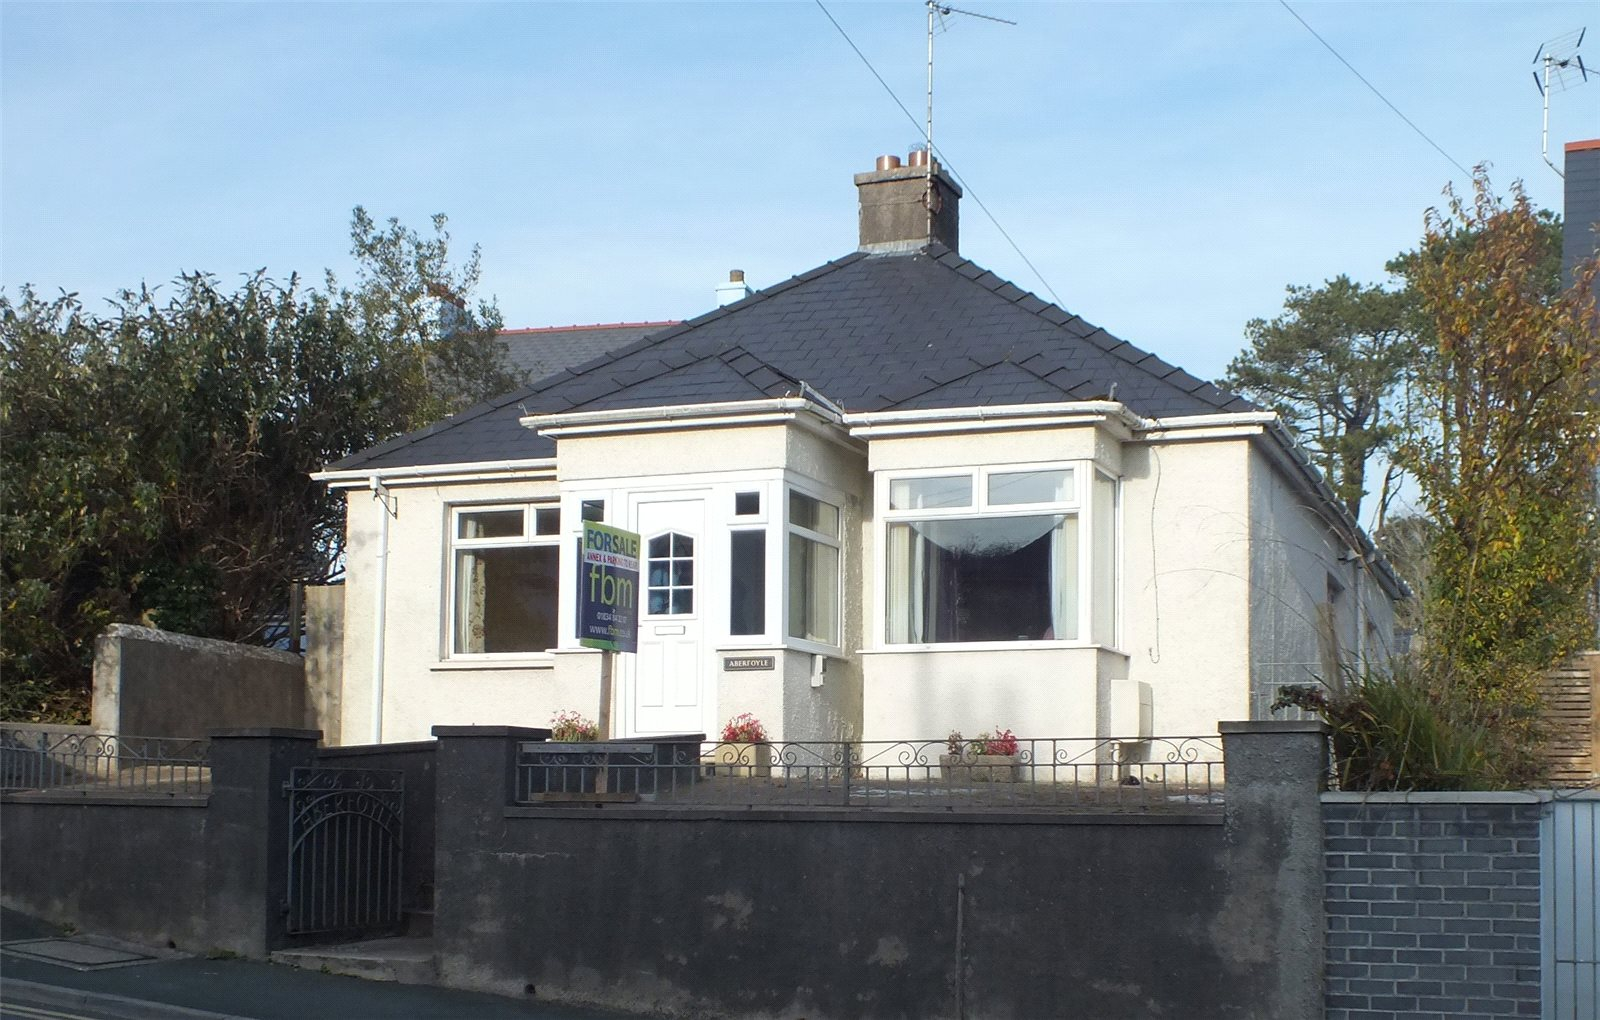 4 Bedrooms Detached Bungalow for sale in Aberfoyle, Broadwell Hayes, Tenby, Pembrokeshire